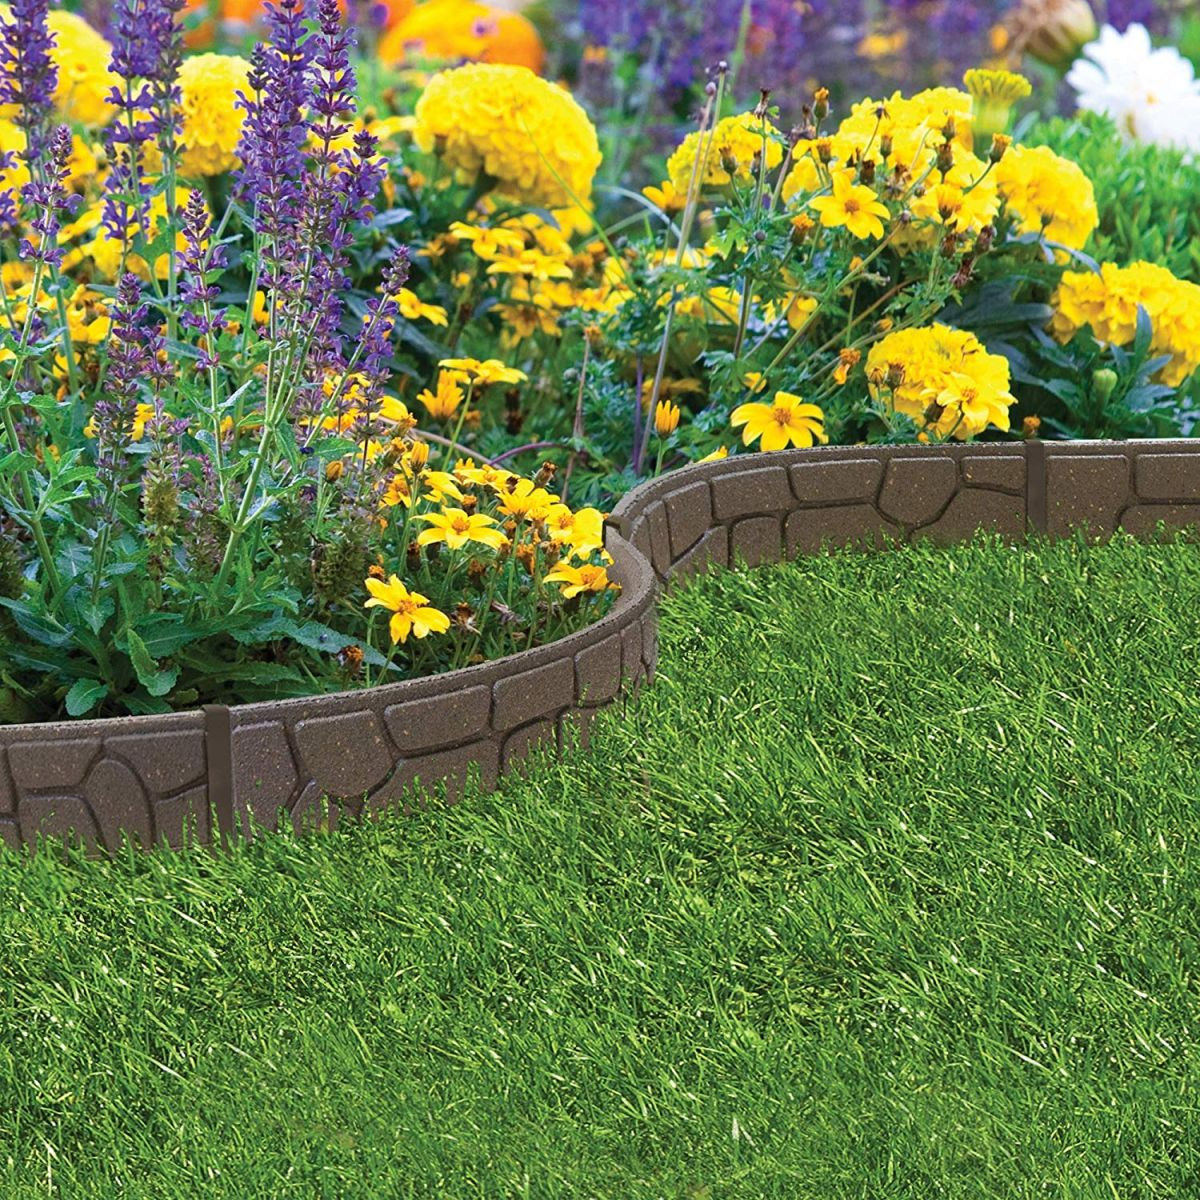 Lawn Edging: 8 Ideas To Keep Your Borders Neat